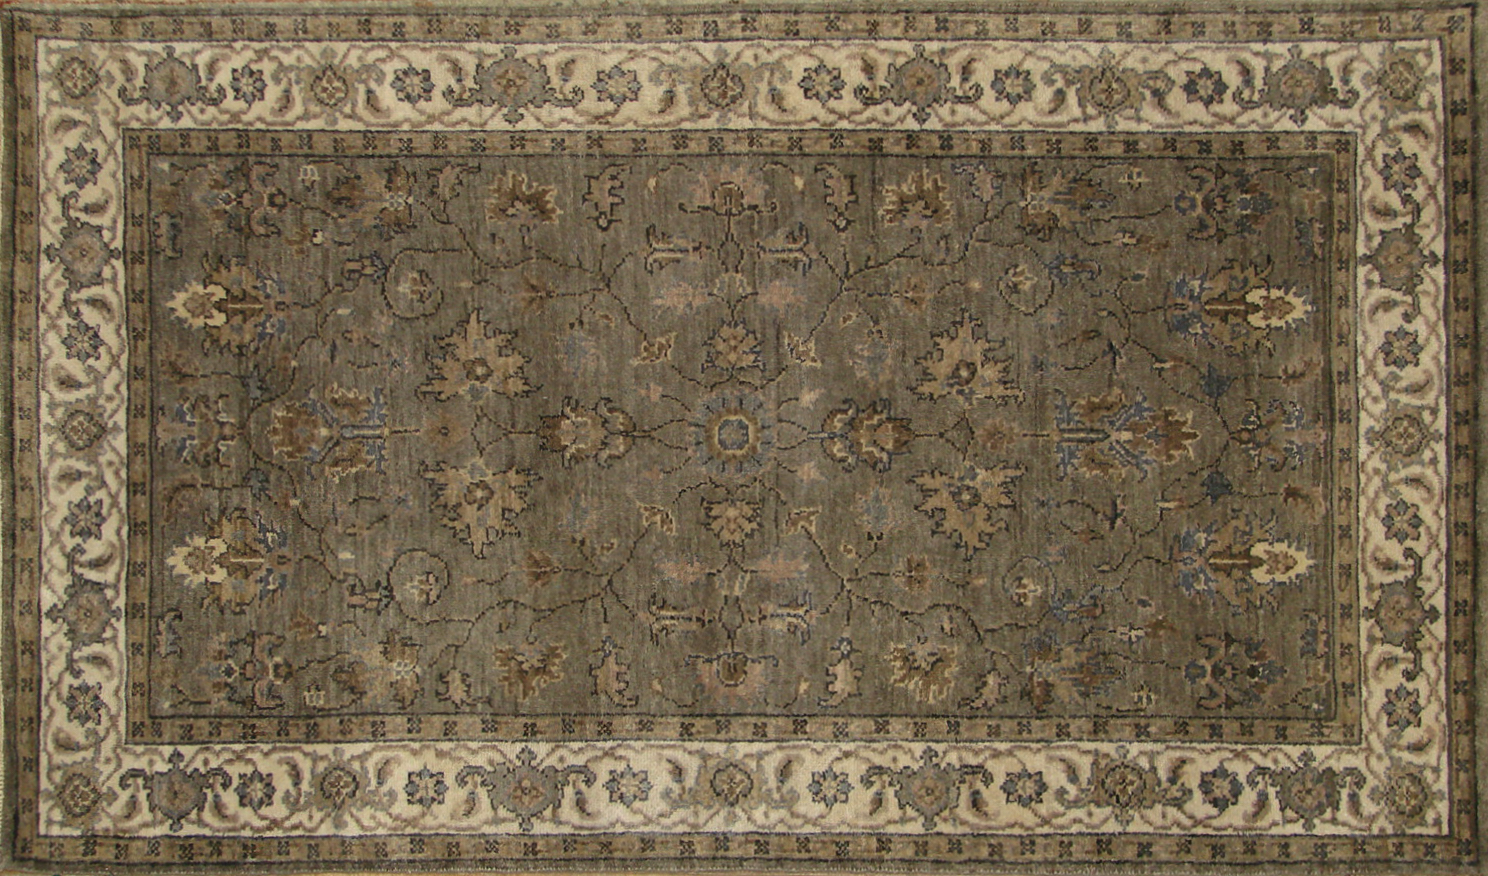 3x5 Antique Revival Hand Knotted Wool Area Rug - MR19884